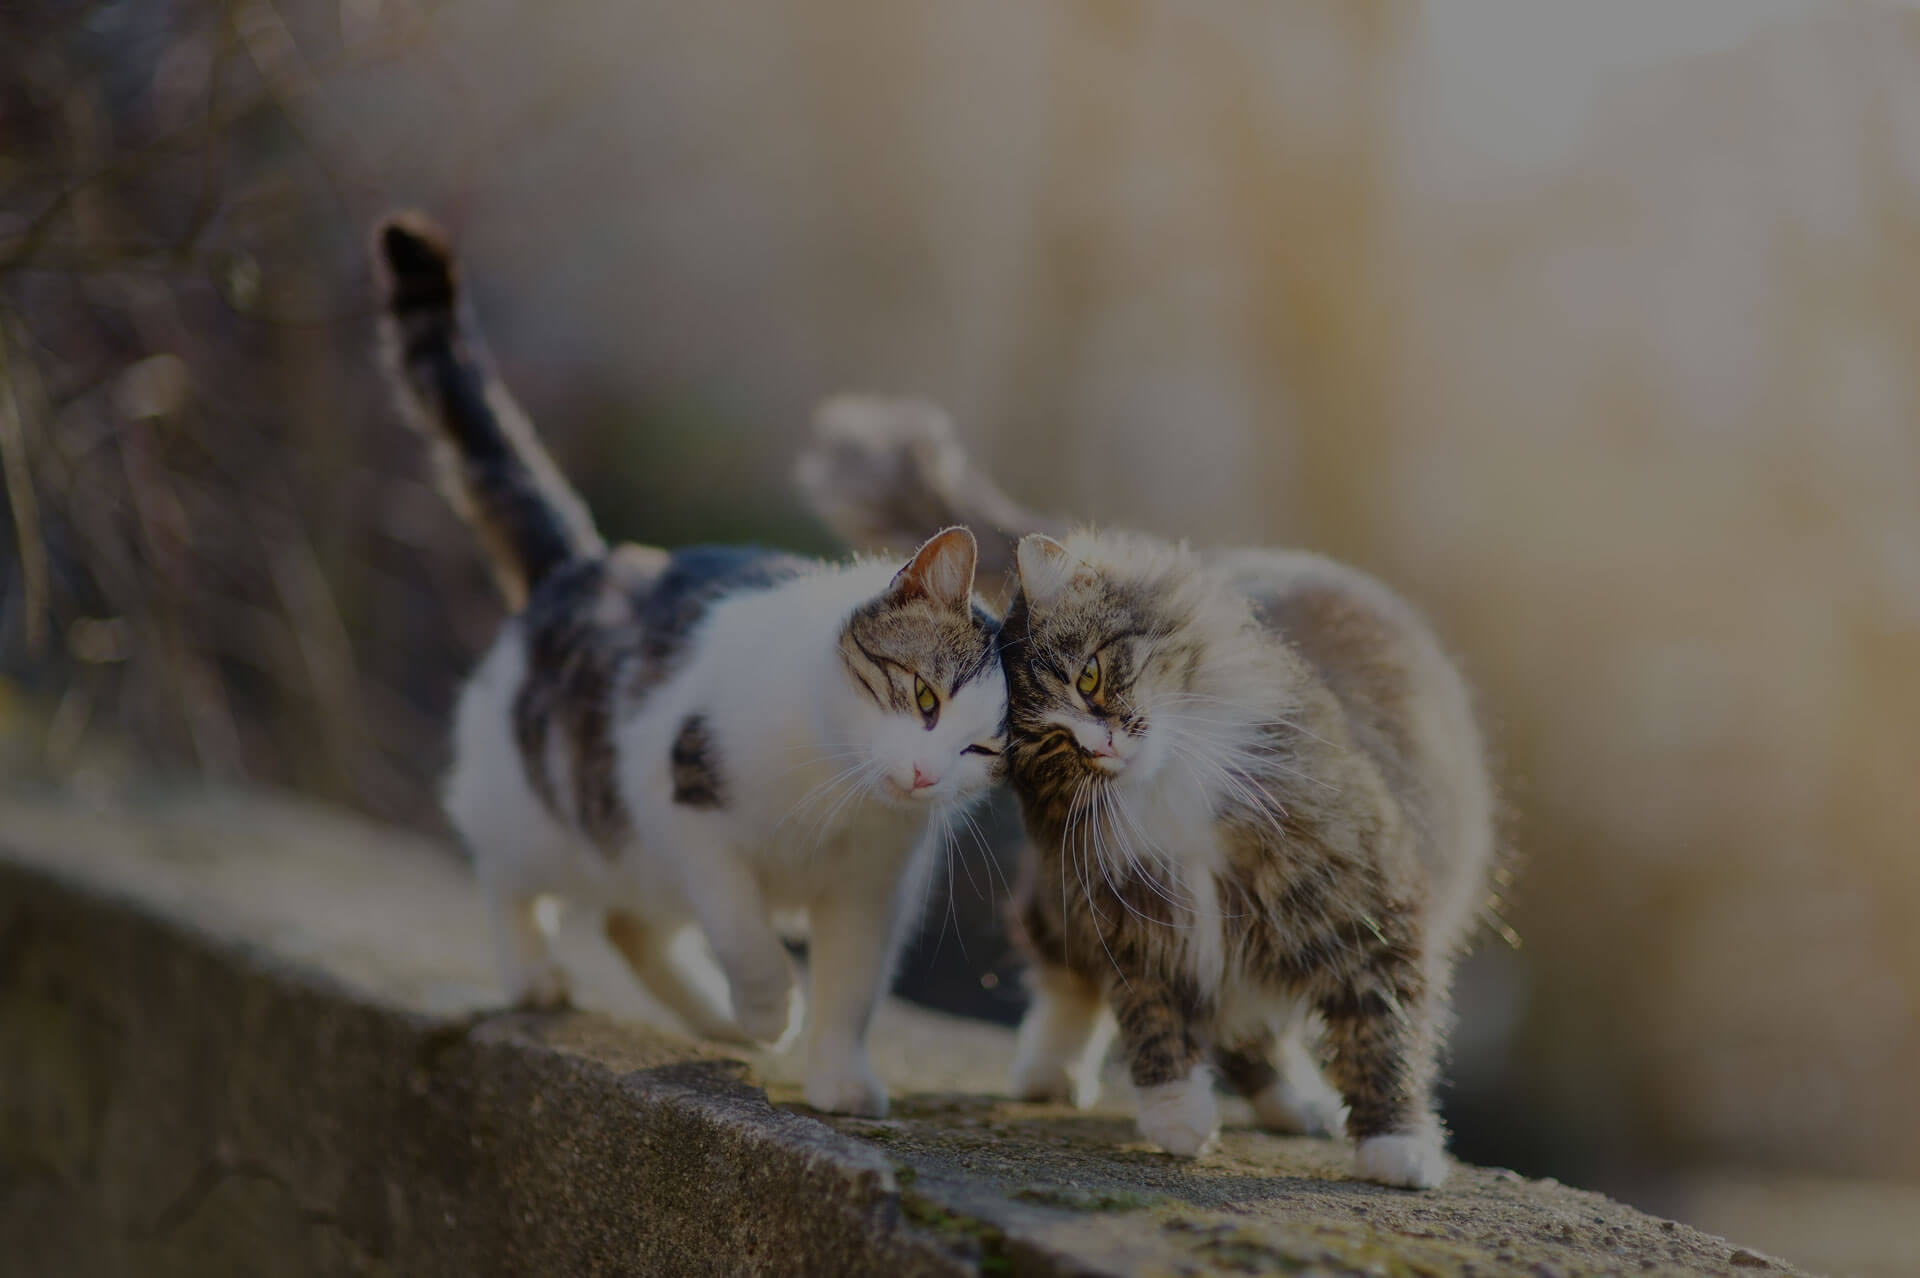 Two cats lovingly rubbing their heads against each other while walking on a wall